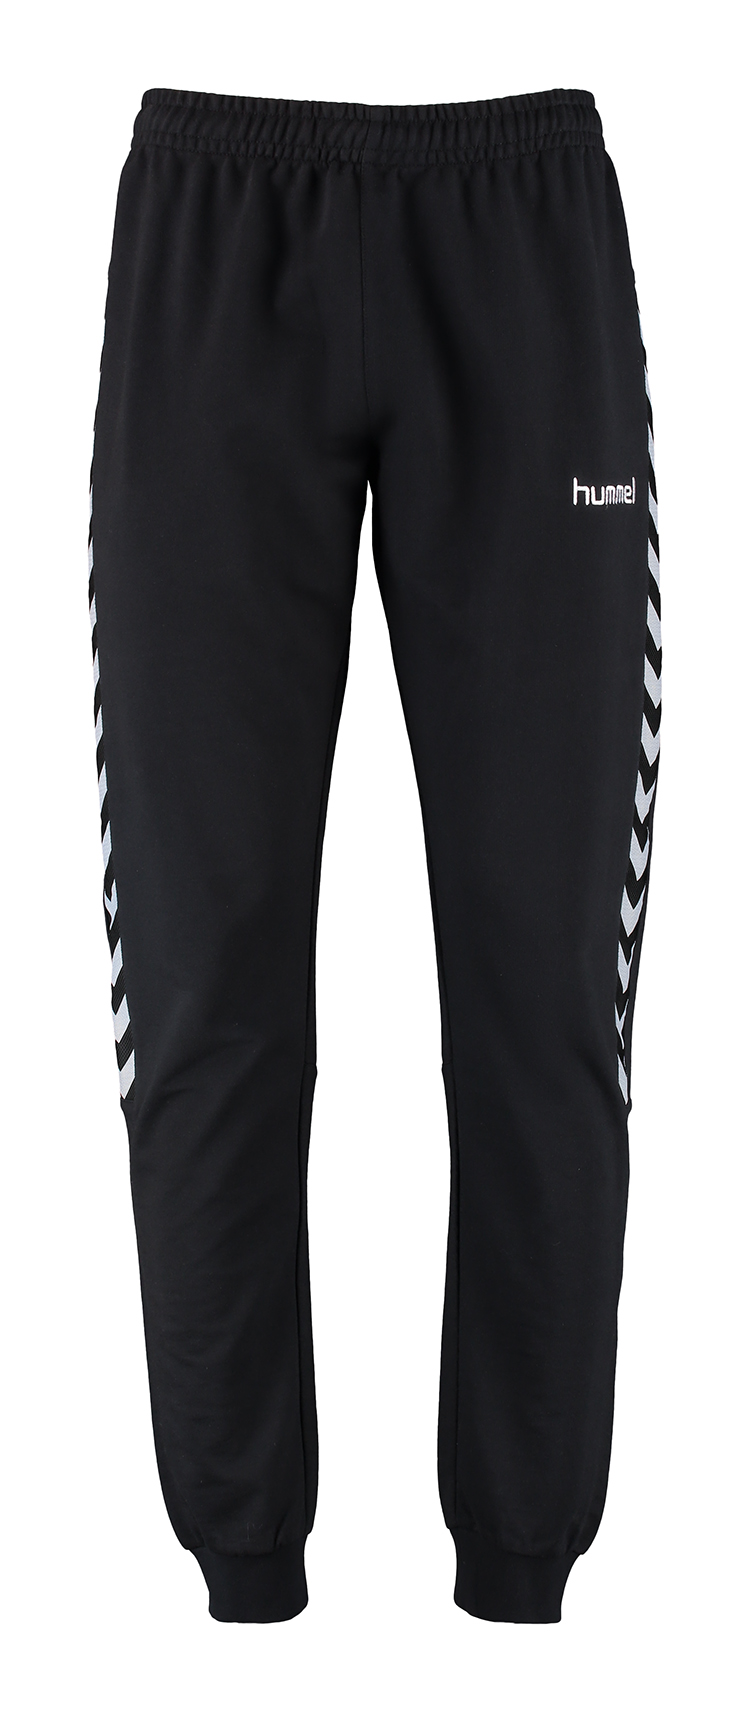 Image of   Hummel Authentic Charge Sweatpants til mænd